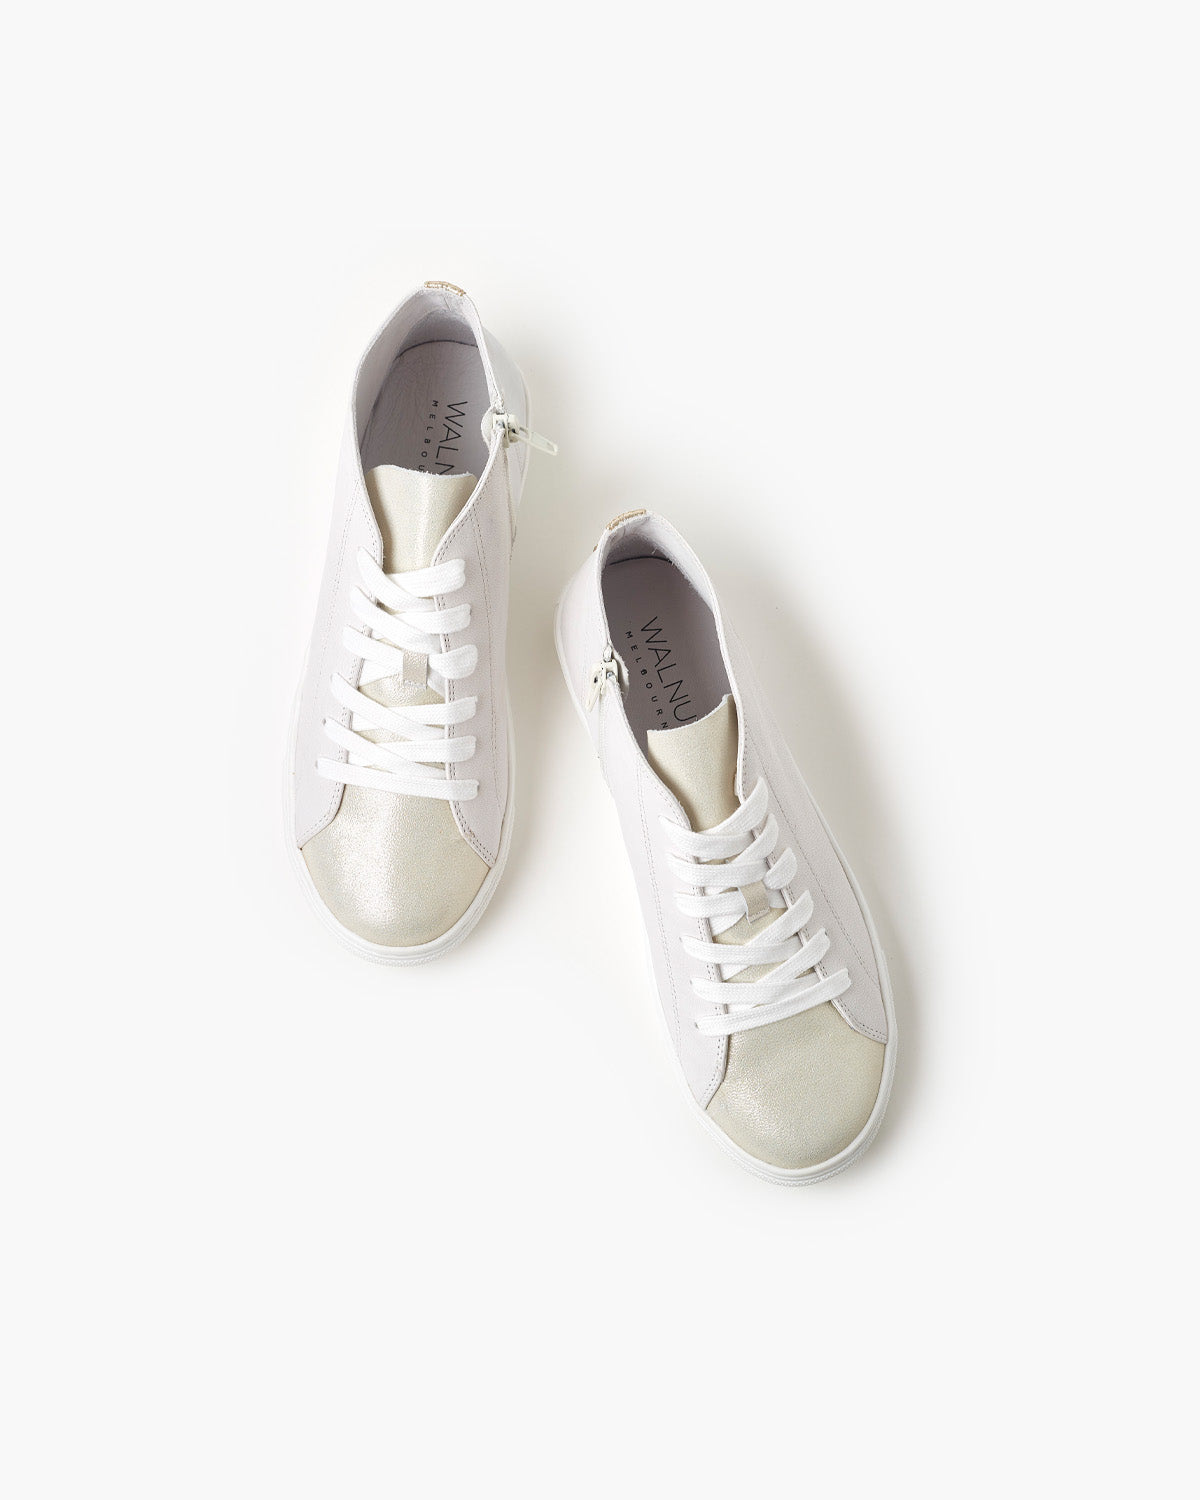 Uma Leather Sneaker - Off White